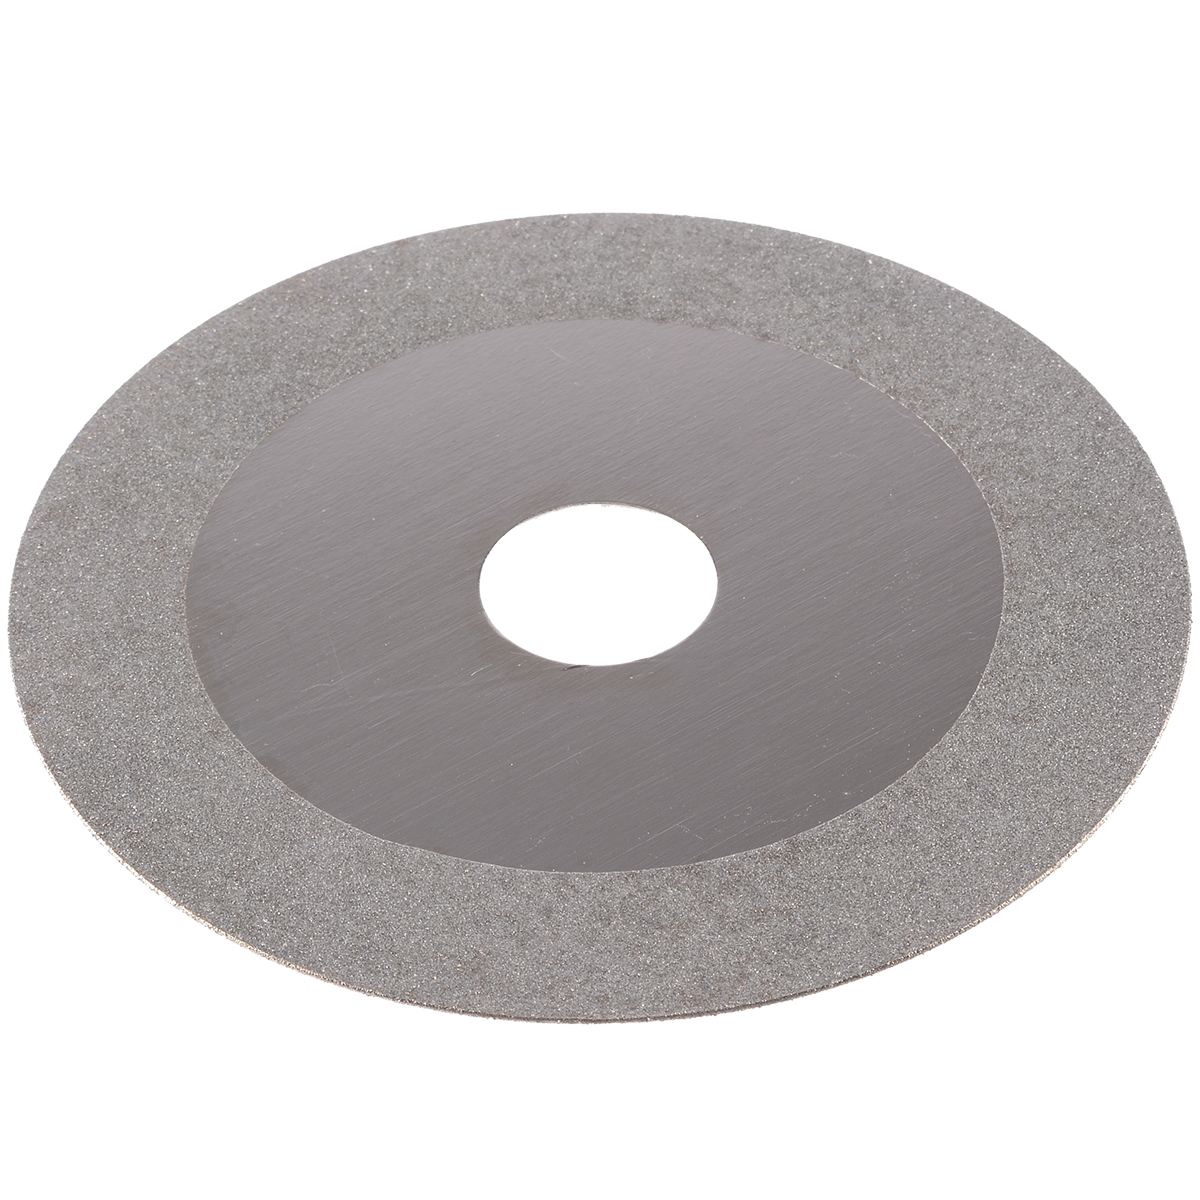 4inch Diamond Cutter Disc Angle Grinding Cut Off Wheel Blades For Stone Glass Metal Cutting Grinding Rotary Tool Accessories